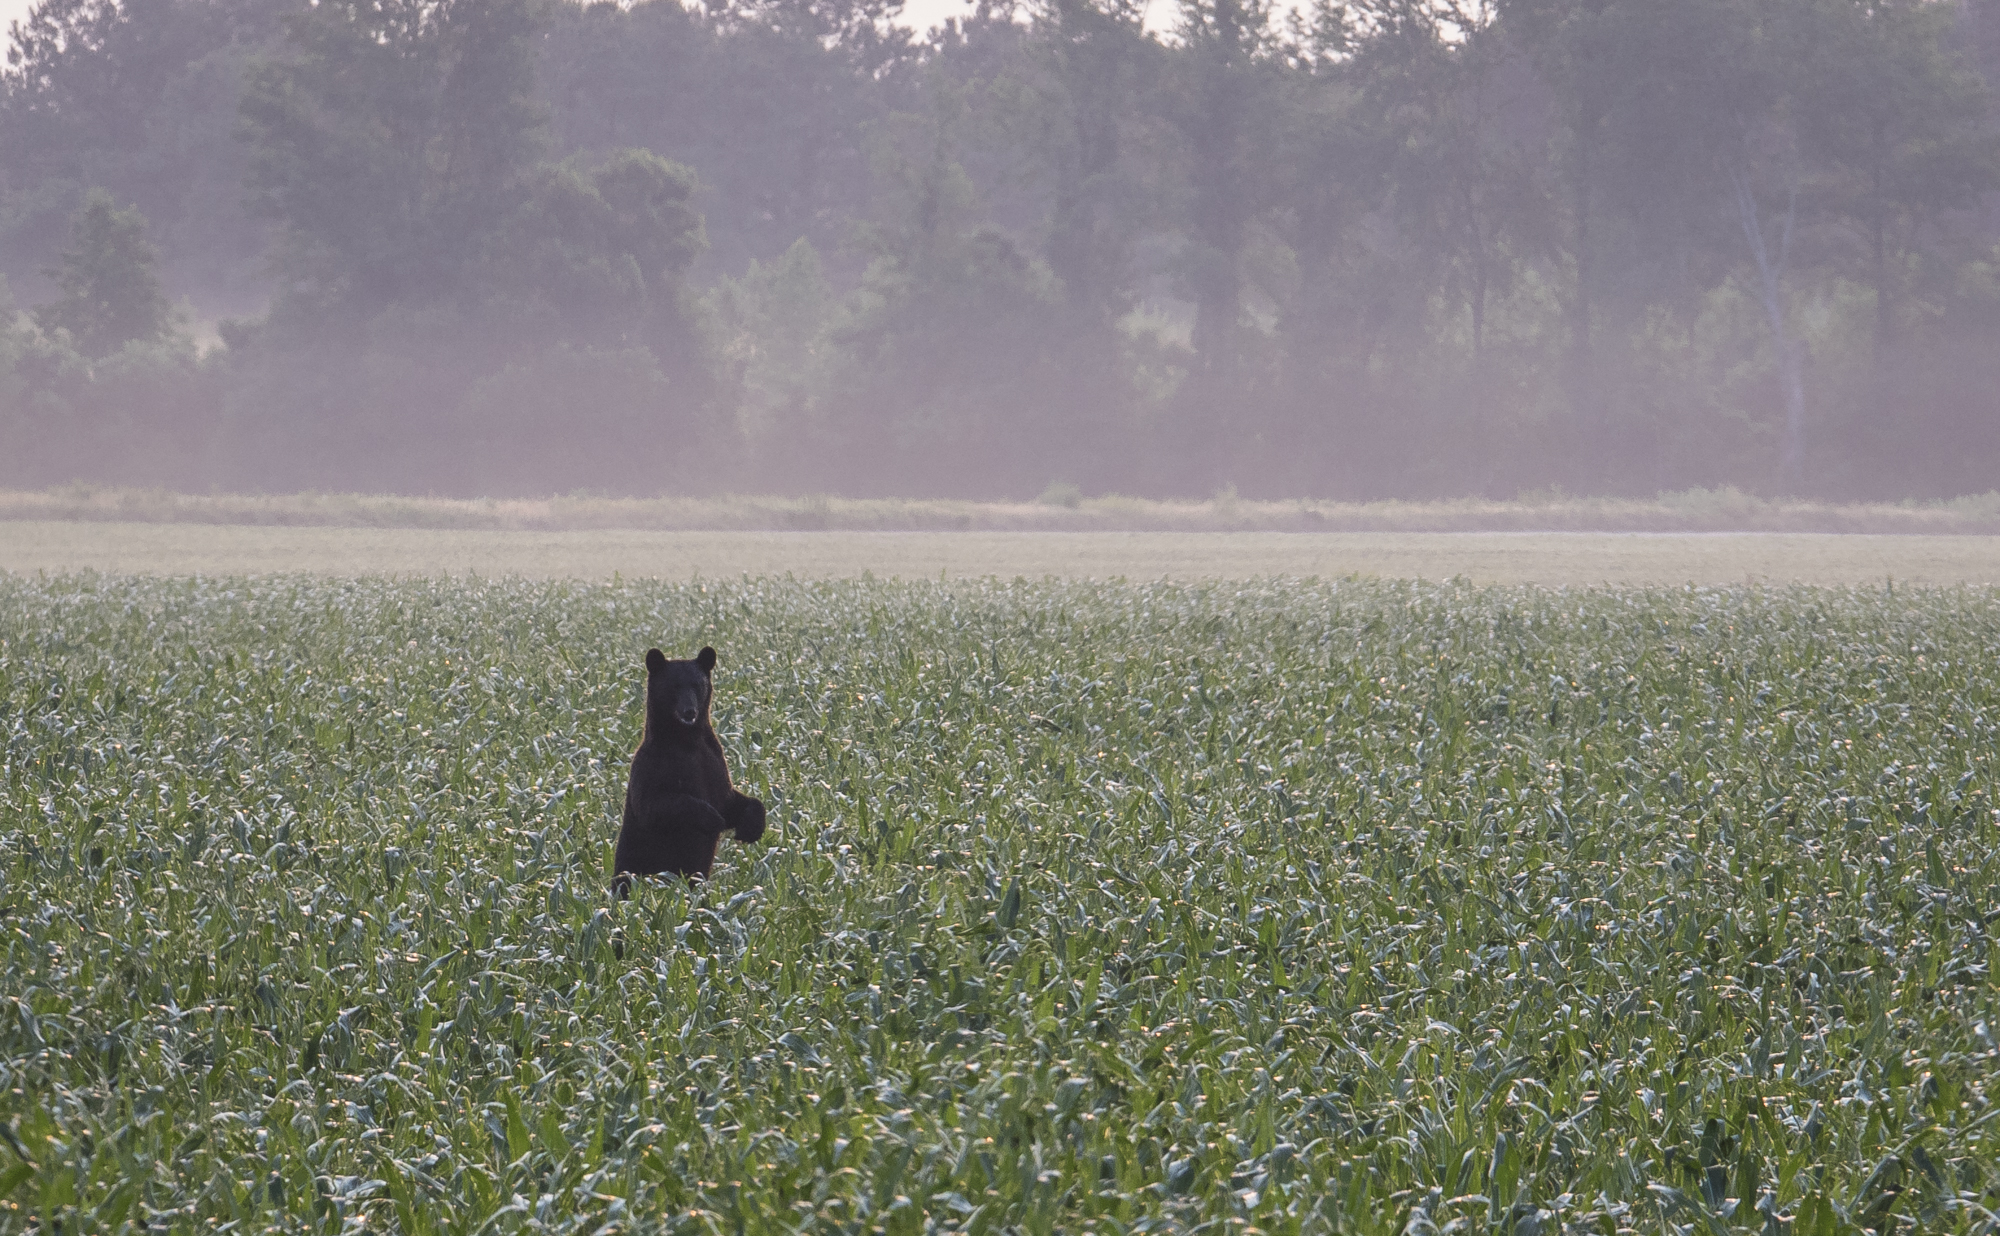 Black bear standing in field